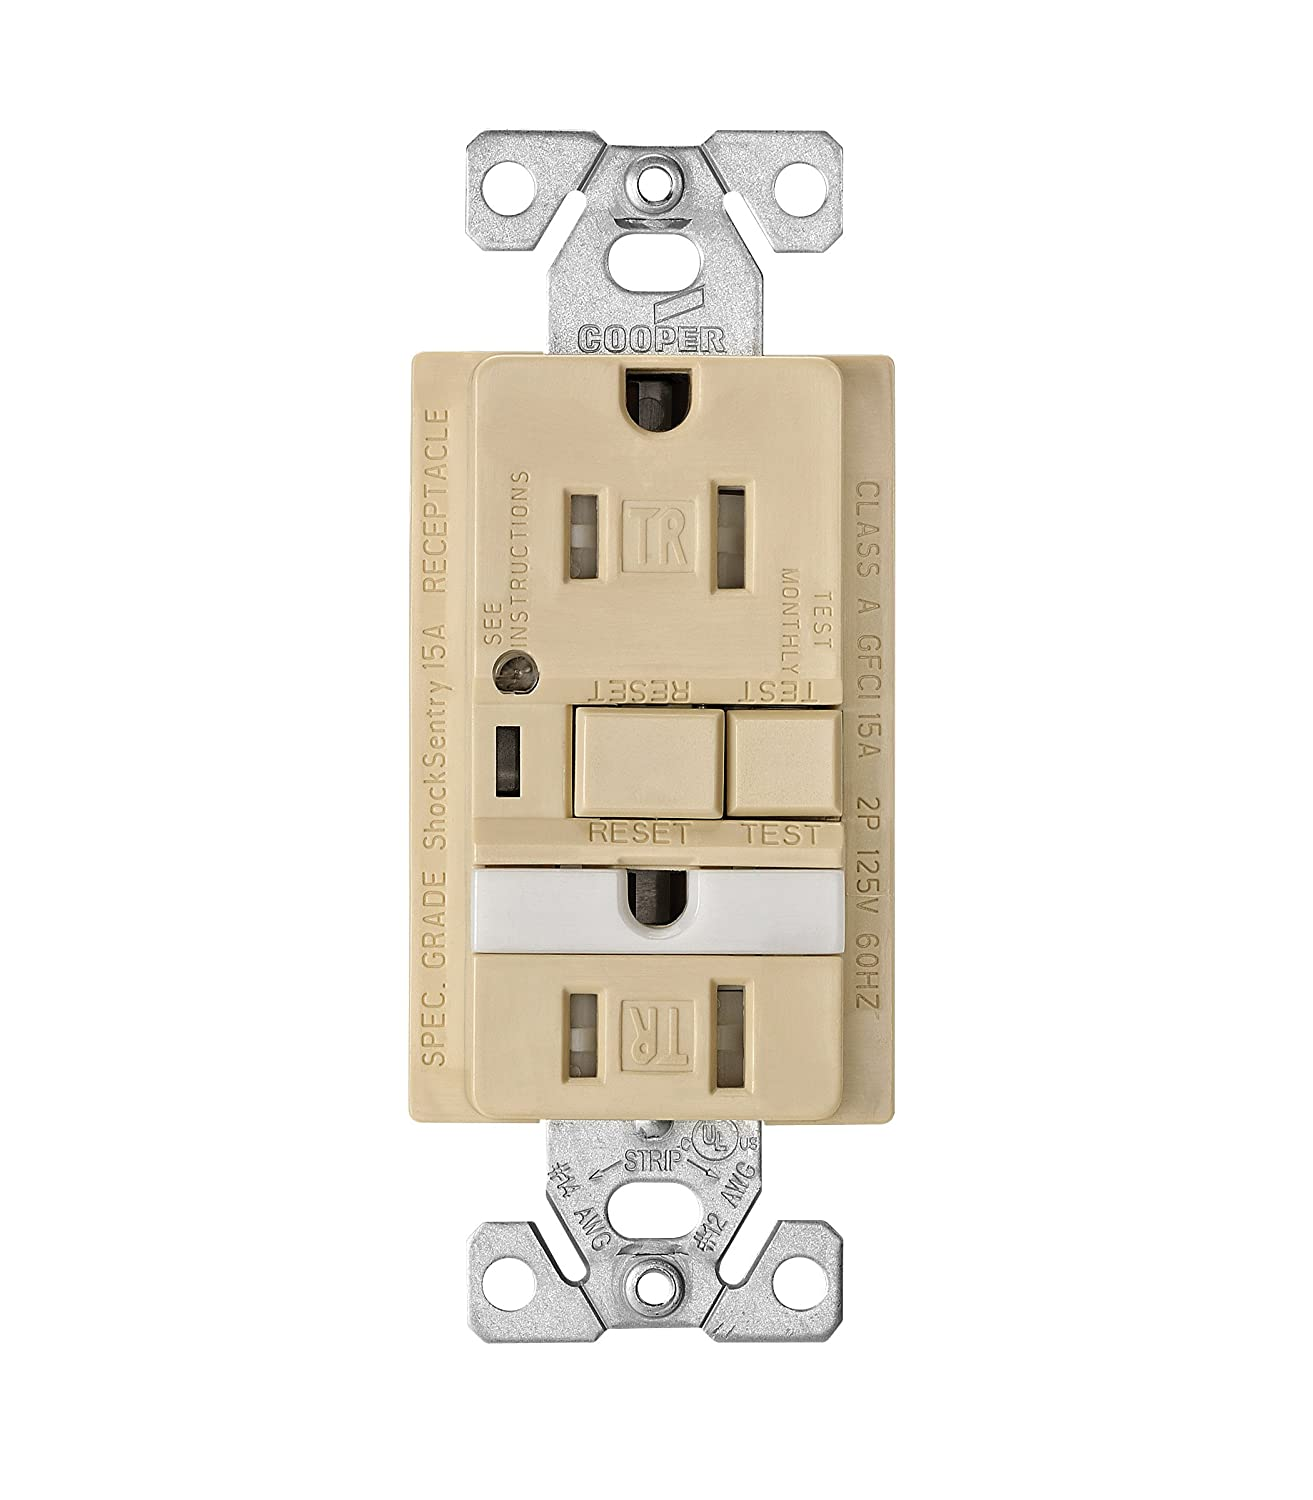 Eaton Trvgfnl15w Tamper Resistant 15 Amp Combination Gfci Receptacle Ivory Electrical Outlets Light Switches 15a Gfi Outlet With Nightlight White Finish Ground Fault Circuit Interrupter